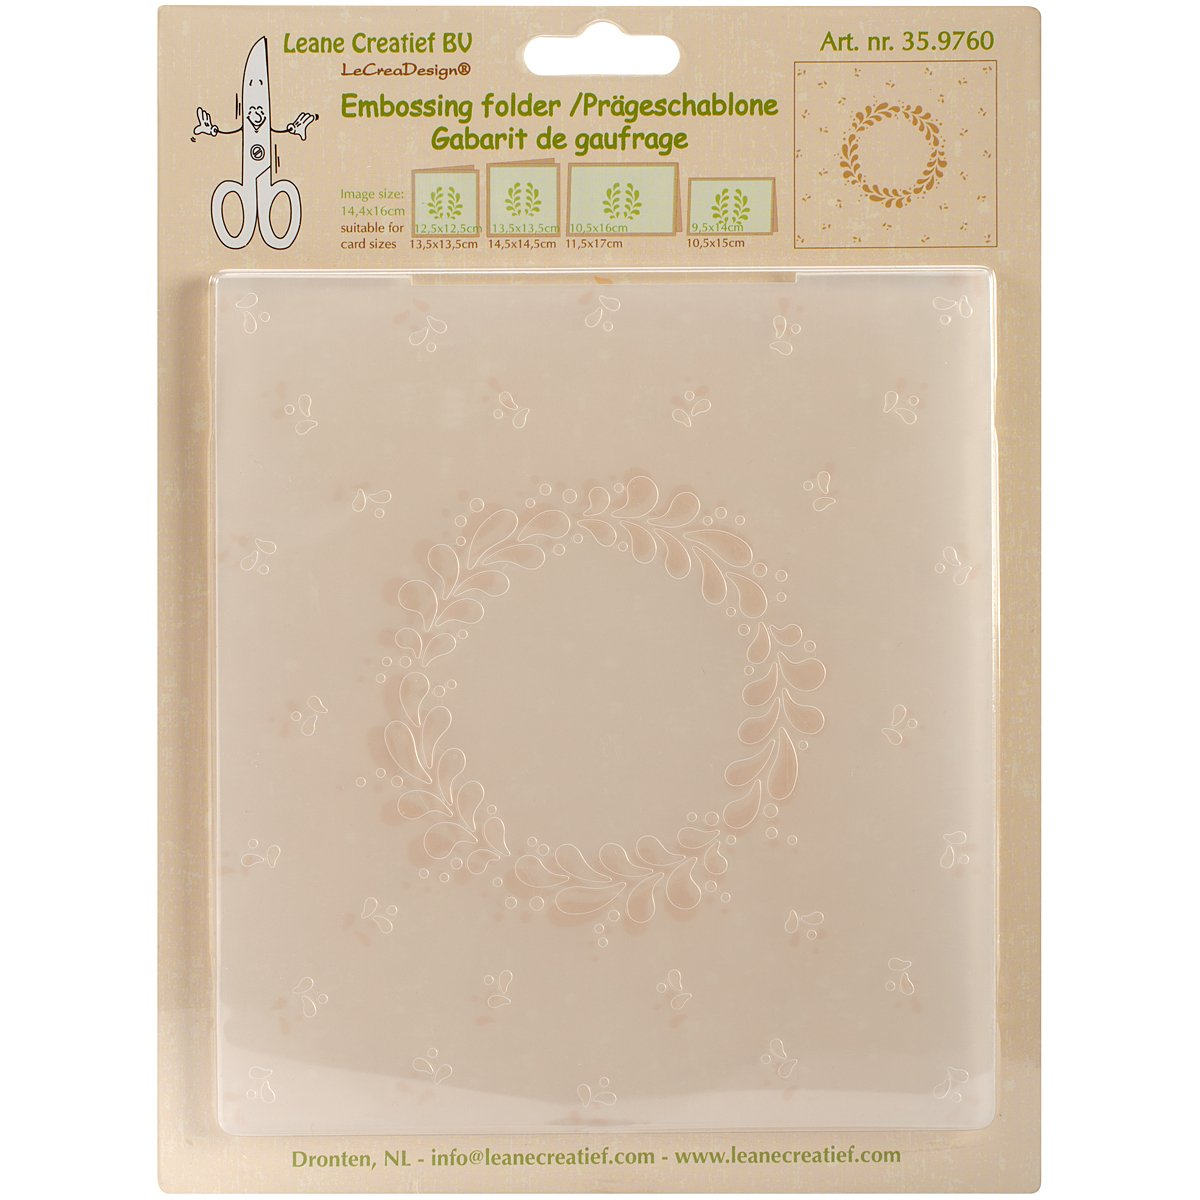 Ecstasy Crafts Leane Creatief Embossing Folder, Frame, 5.75 by 6.375-Inch by Ecstasy Crafts